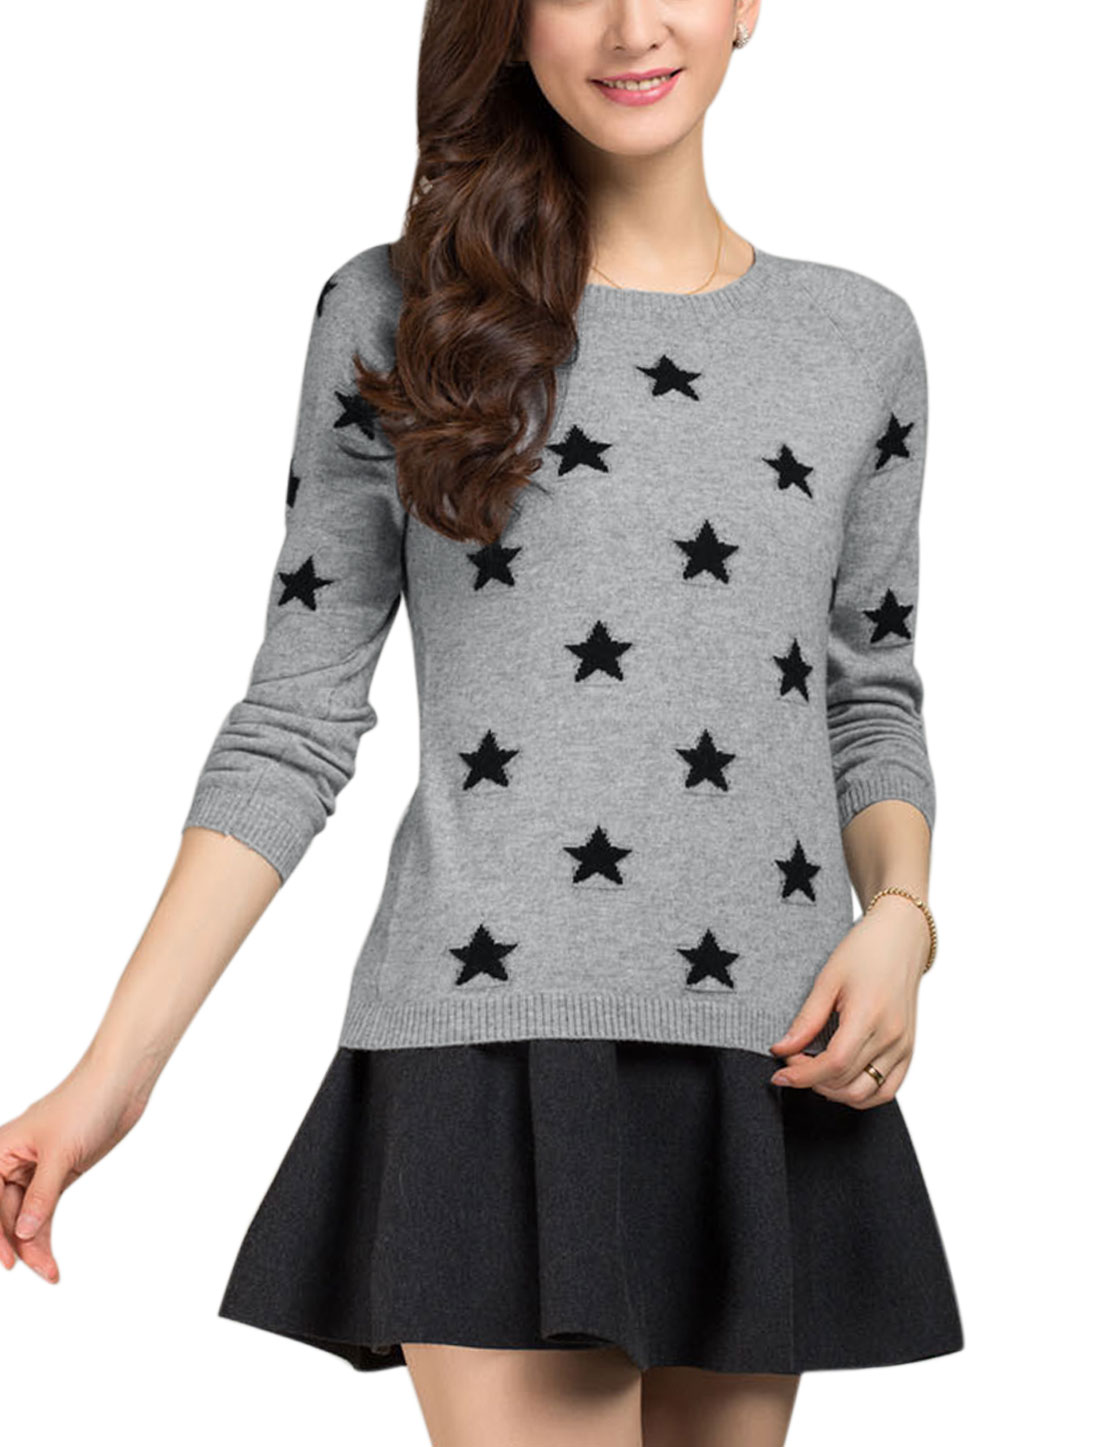 Lady Pullover Stars Pattern Long Sleeve Leisure Knit Shirt Gray S